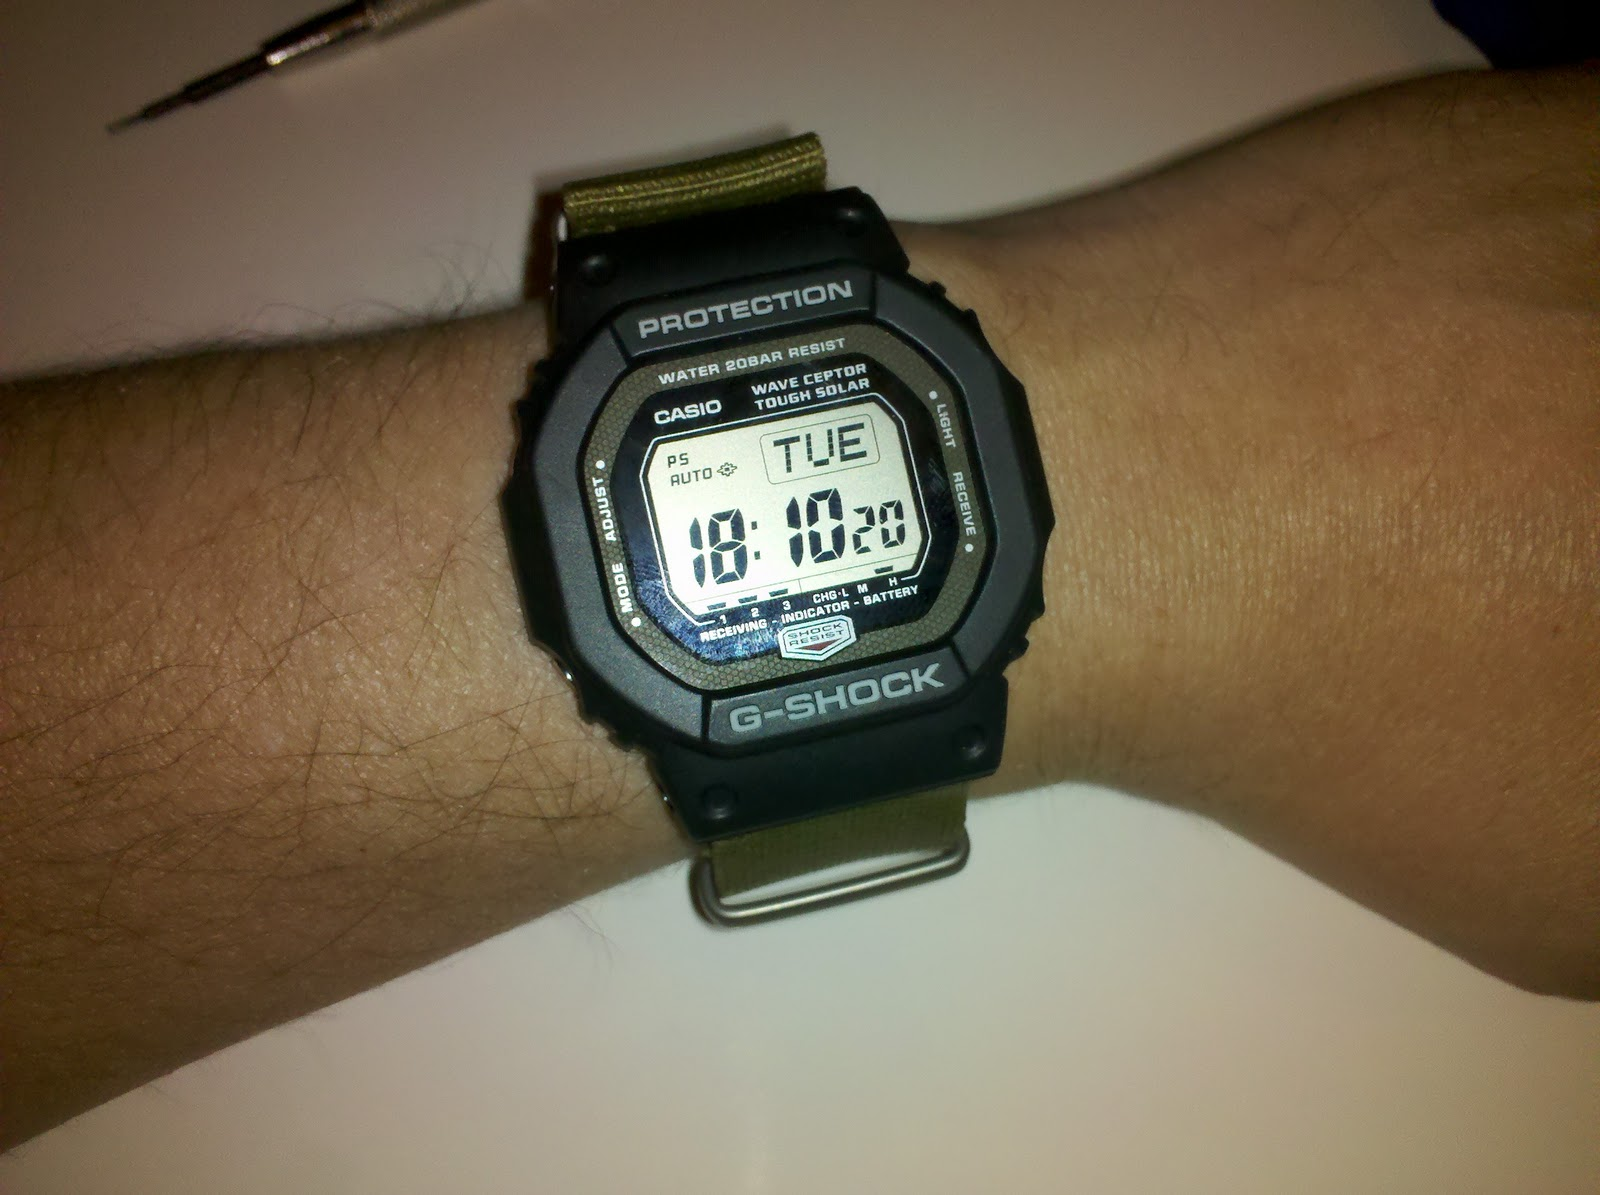 Used shock watches for sale in bangalore dating 3